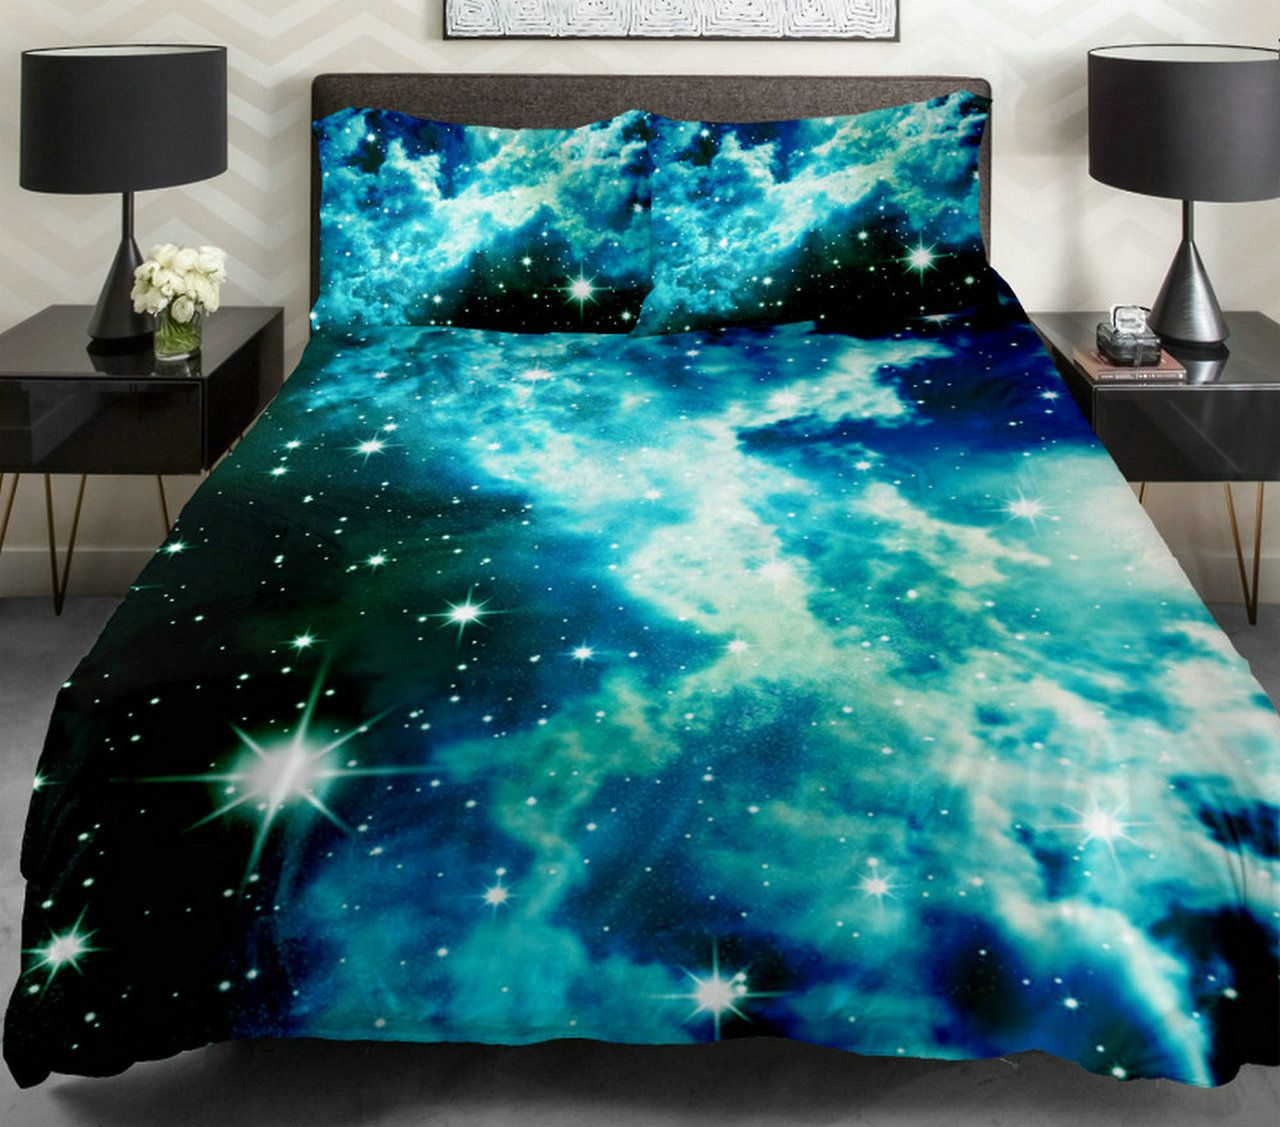 20 Wondrous Space Themed Bedroom Ideas You Should Try Space Bed